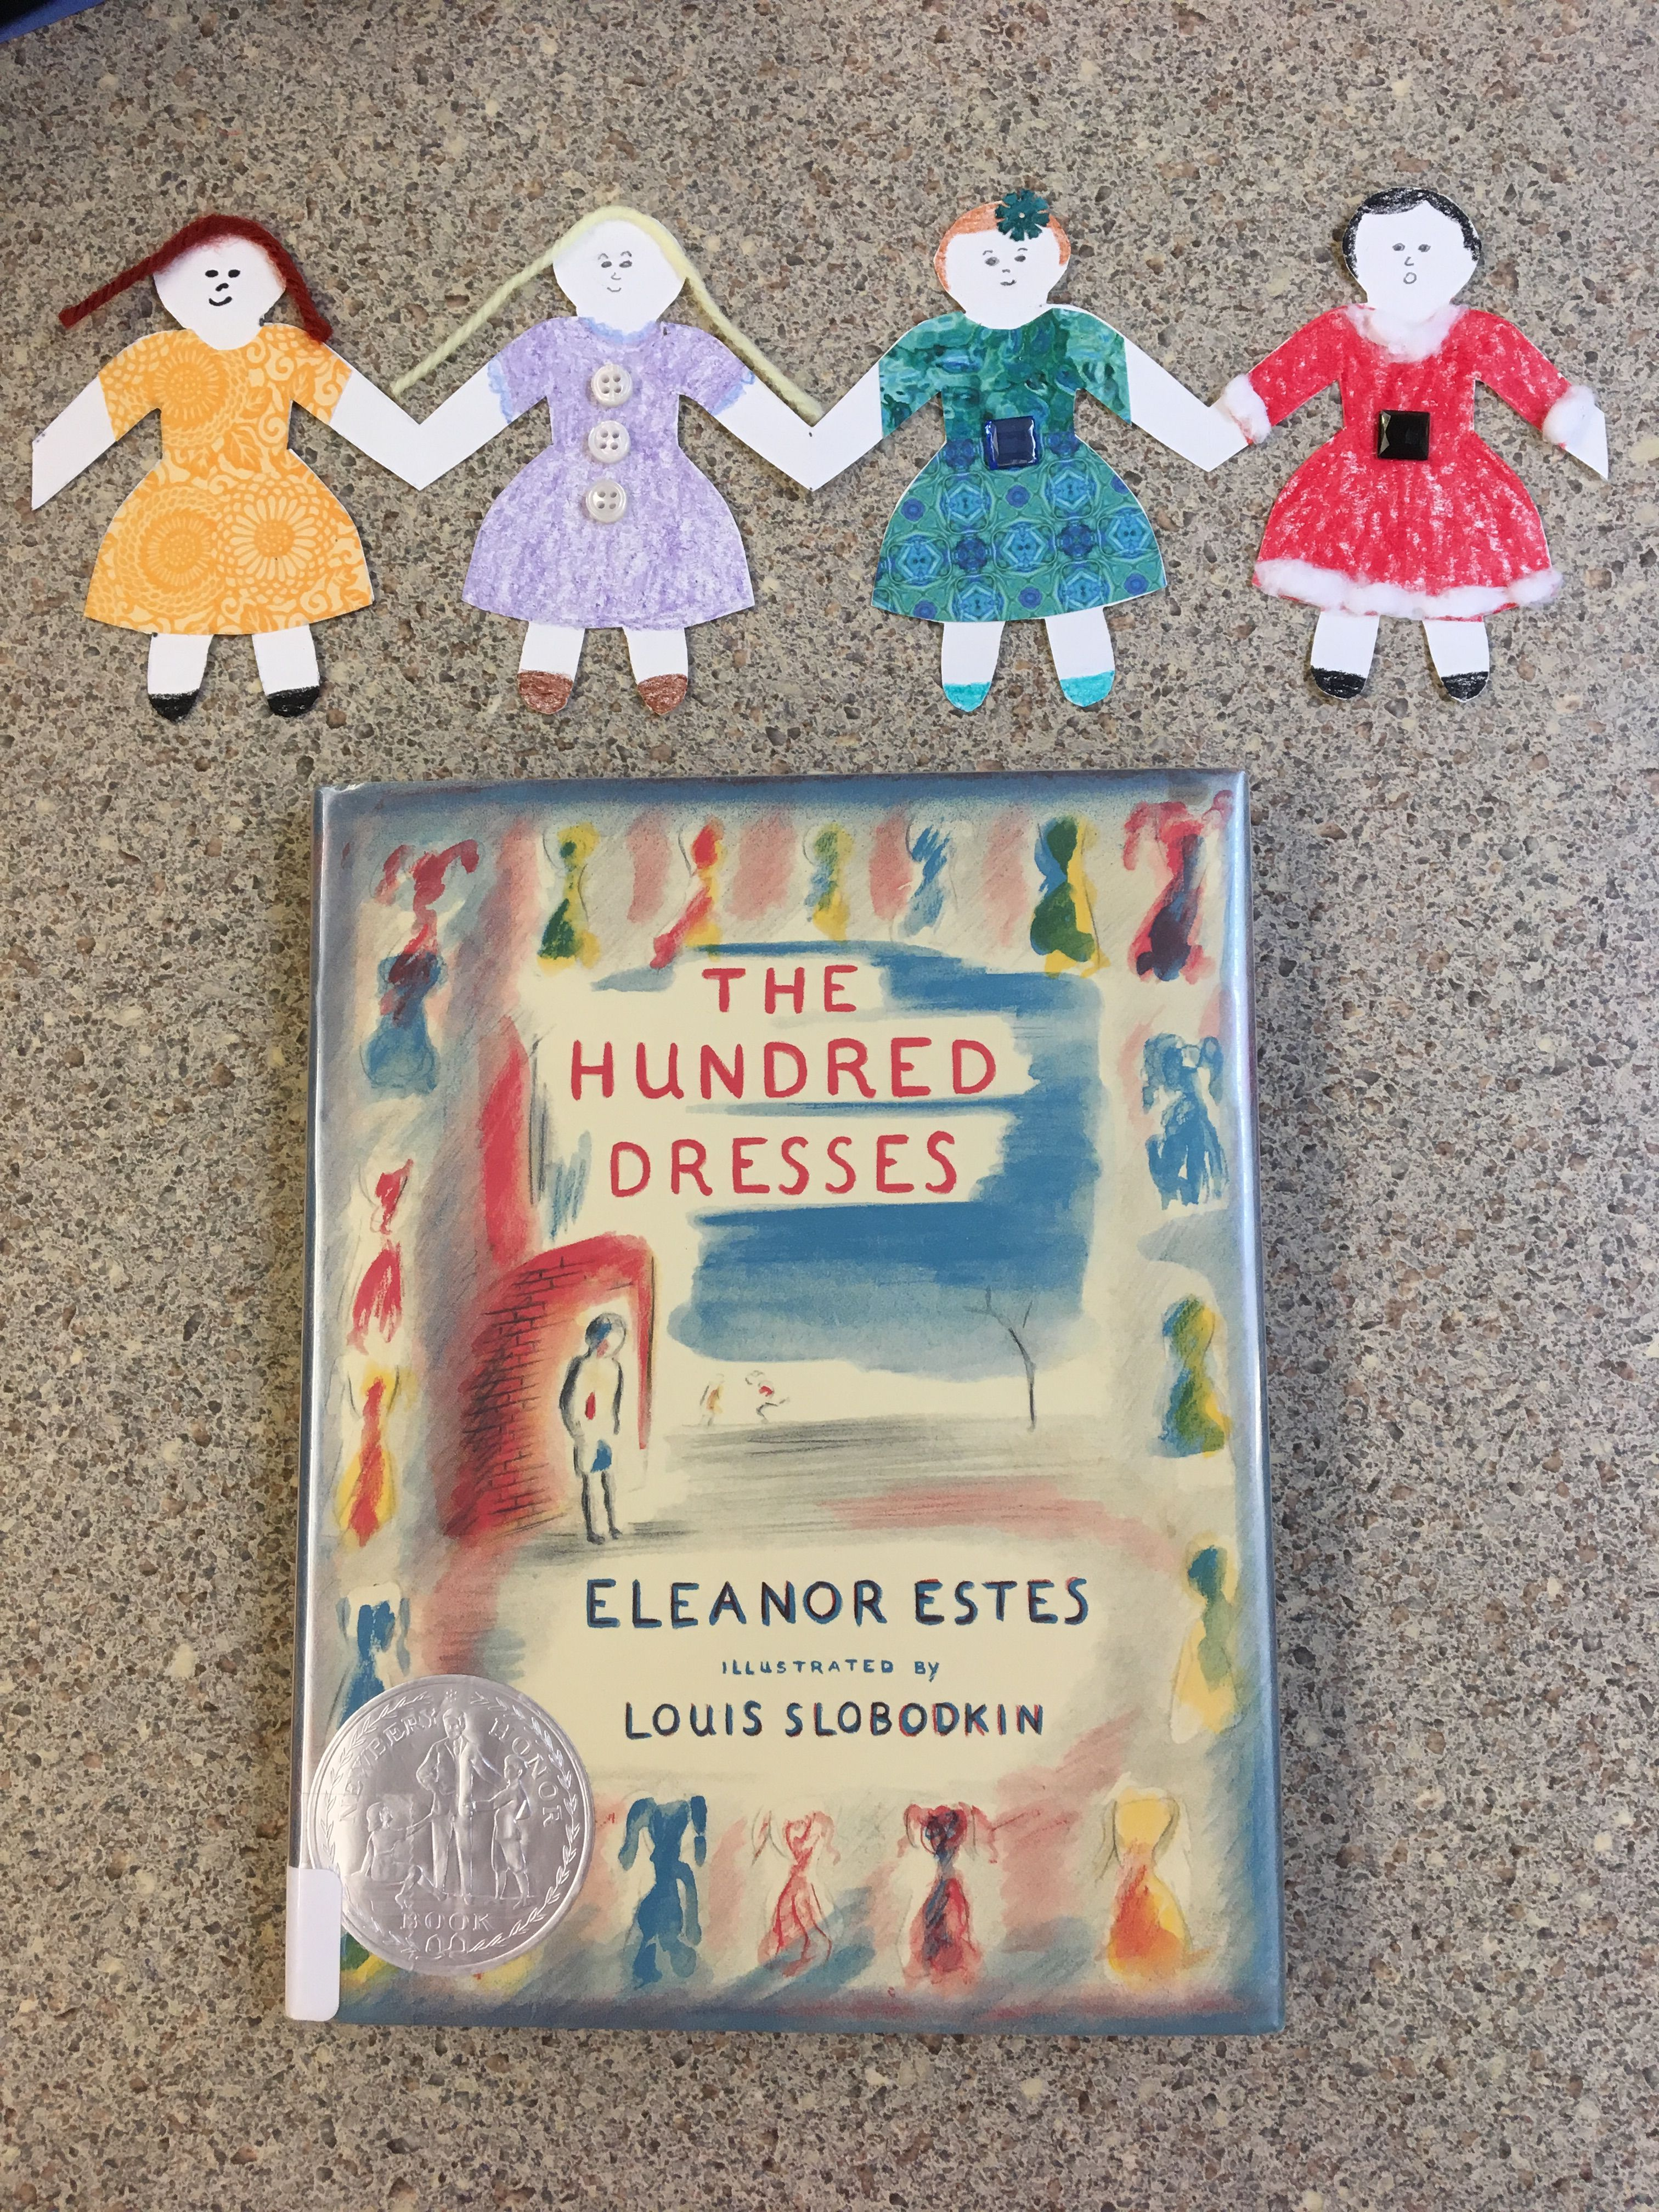 worksheet The Hundred Dresses Worksheets book the hundred dresses by eleanor estes craft paper doll chain